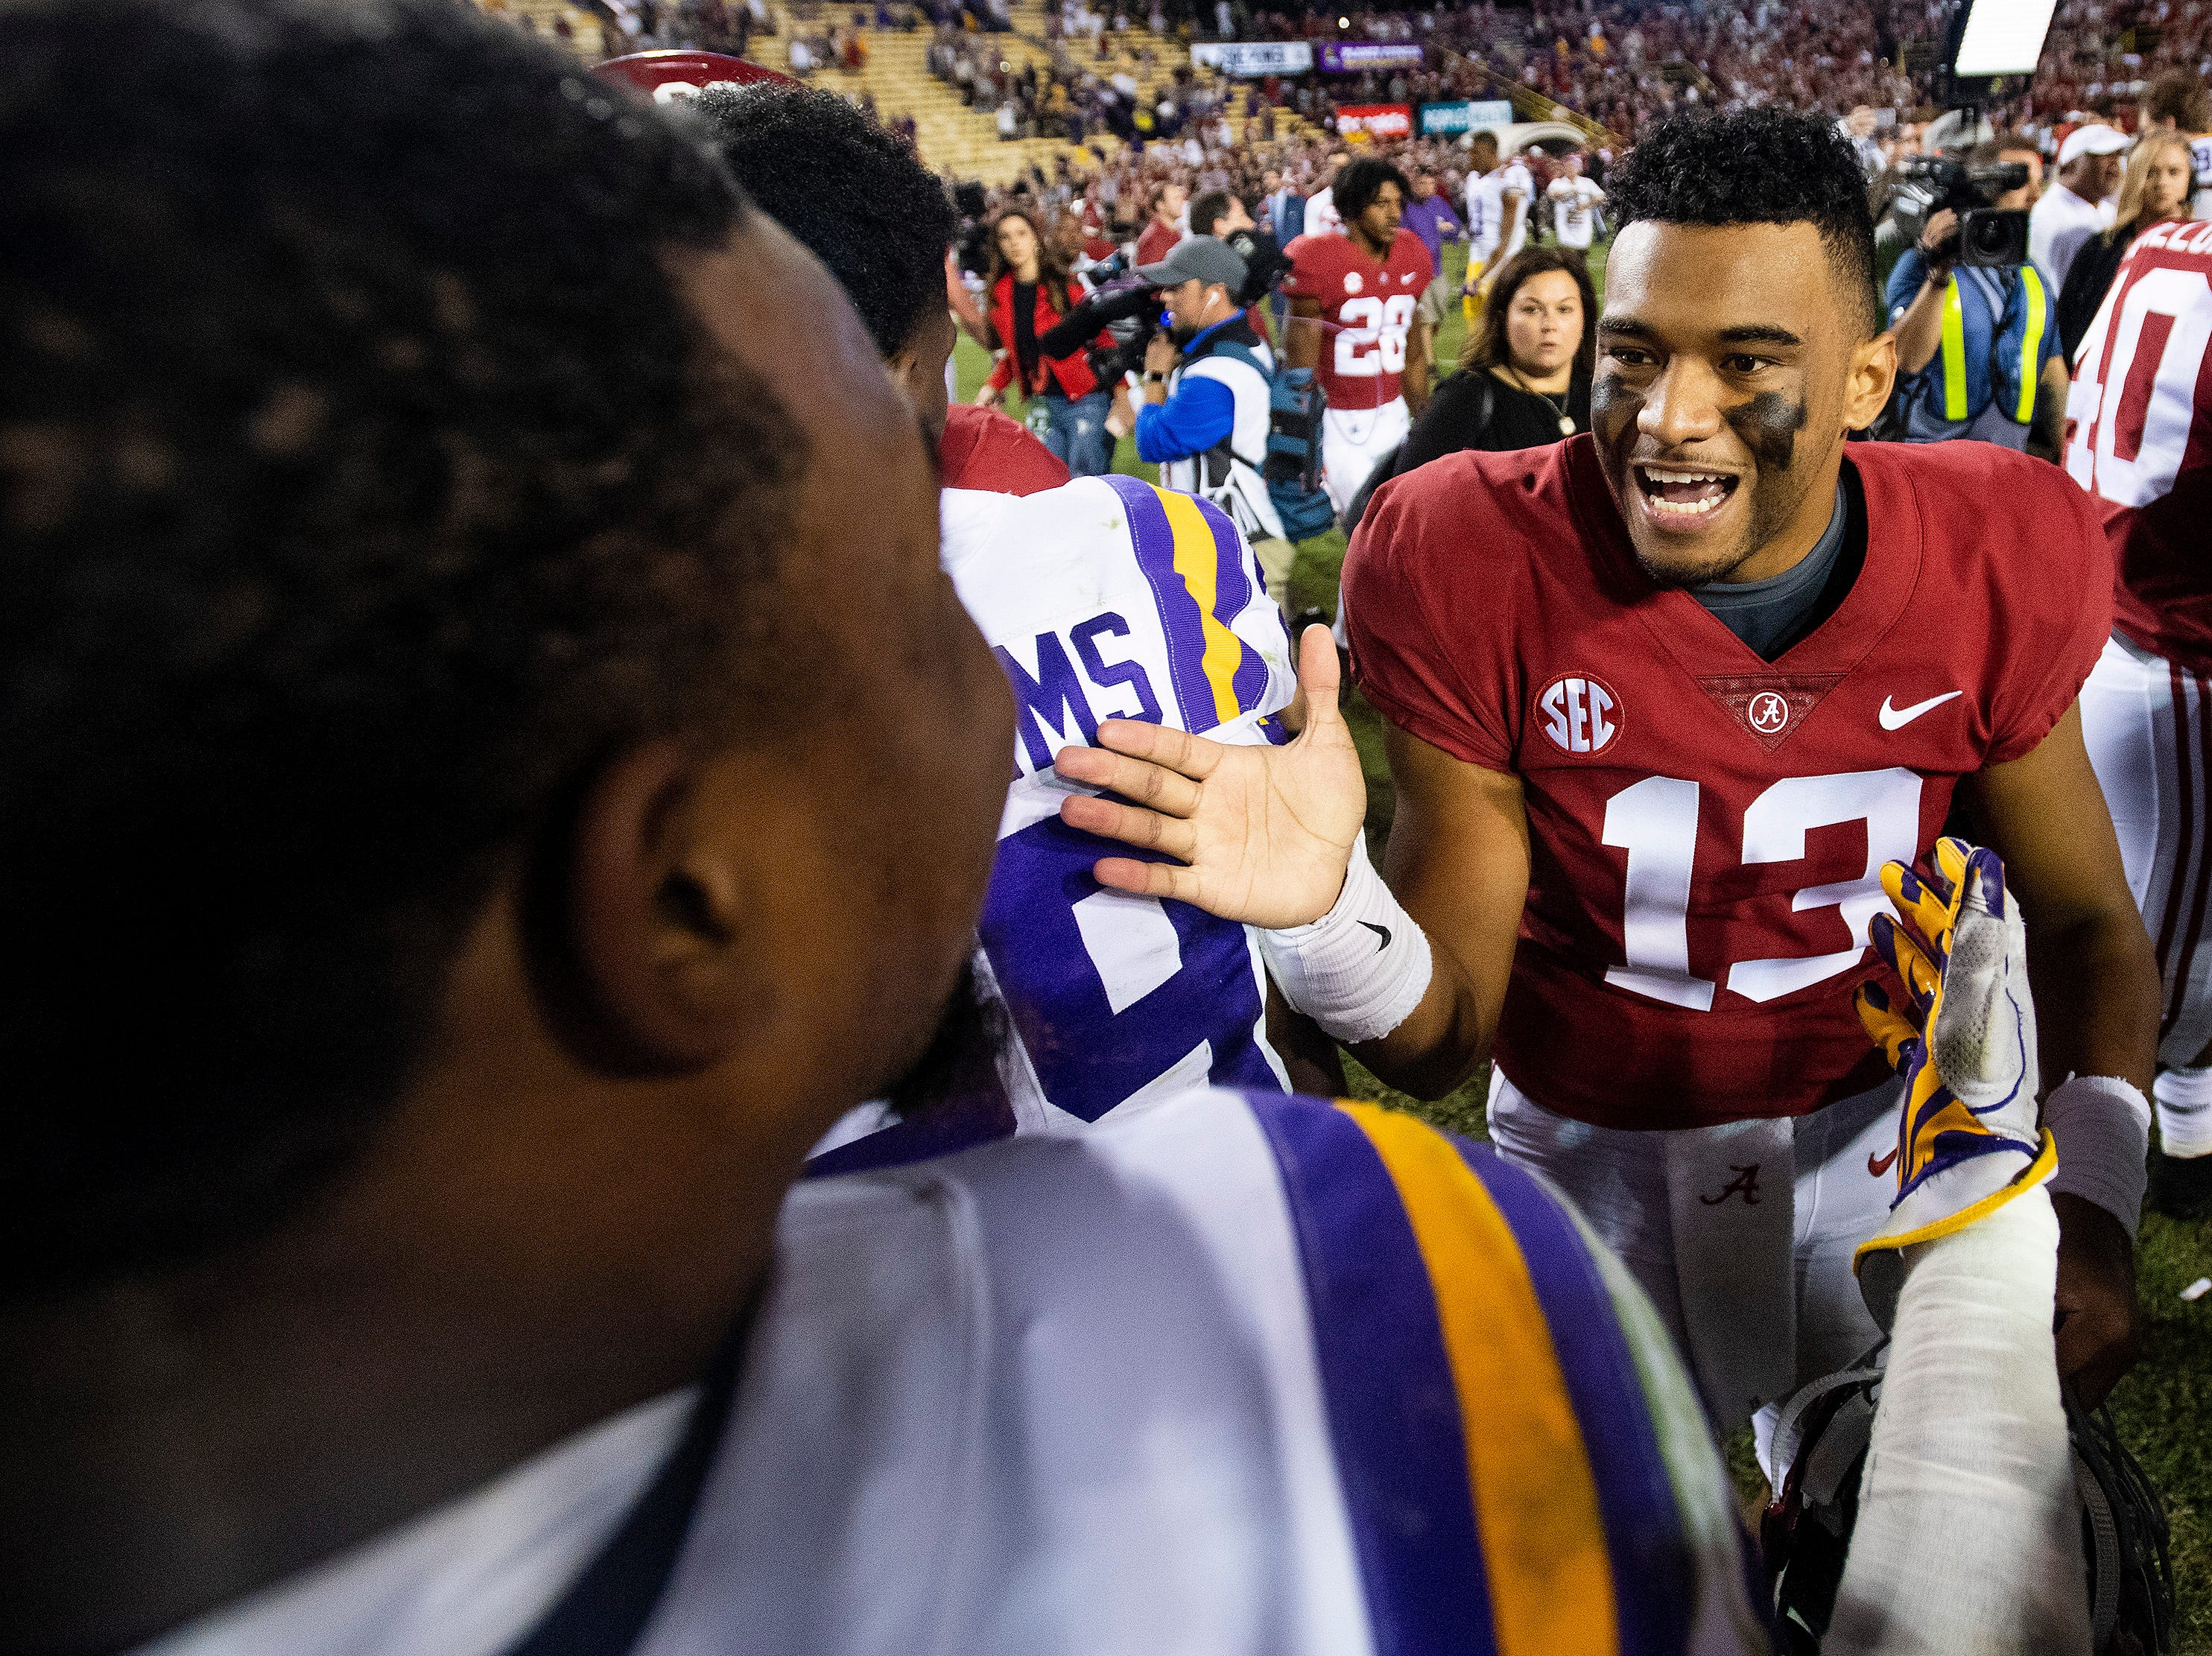 Alabama quarterback Tua Tagovailoa (13) greets Louisiana State University outside linebacker Michael Divinity, Jr., (45) after defeating LSU at Tiger Stadium in Baton Rouge, La., on Saturday November 3, 2018.